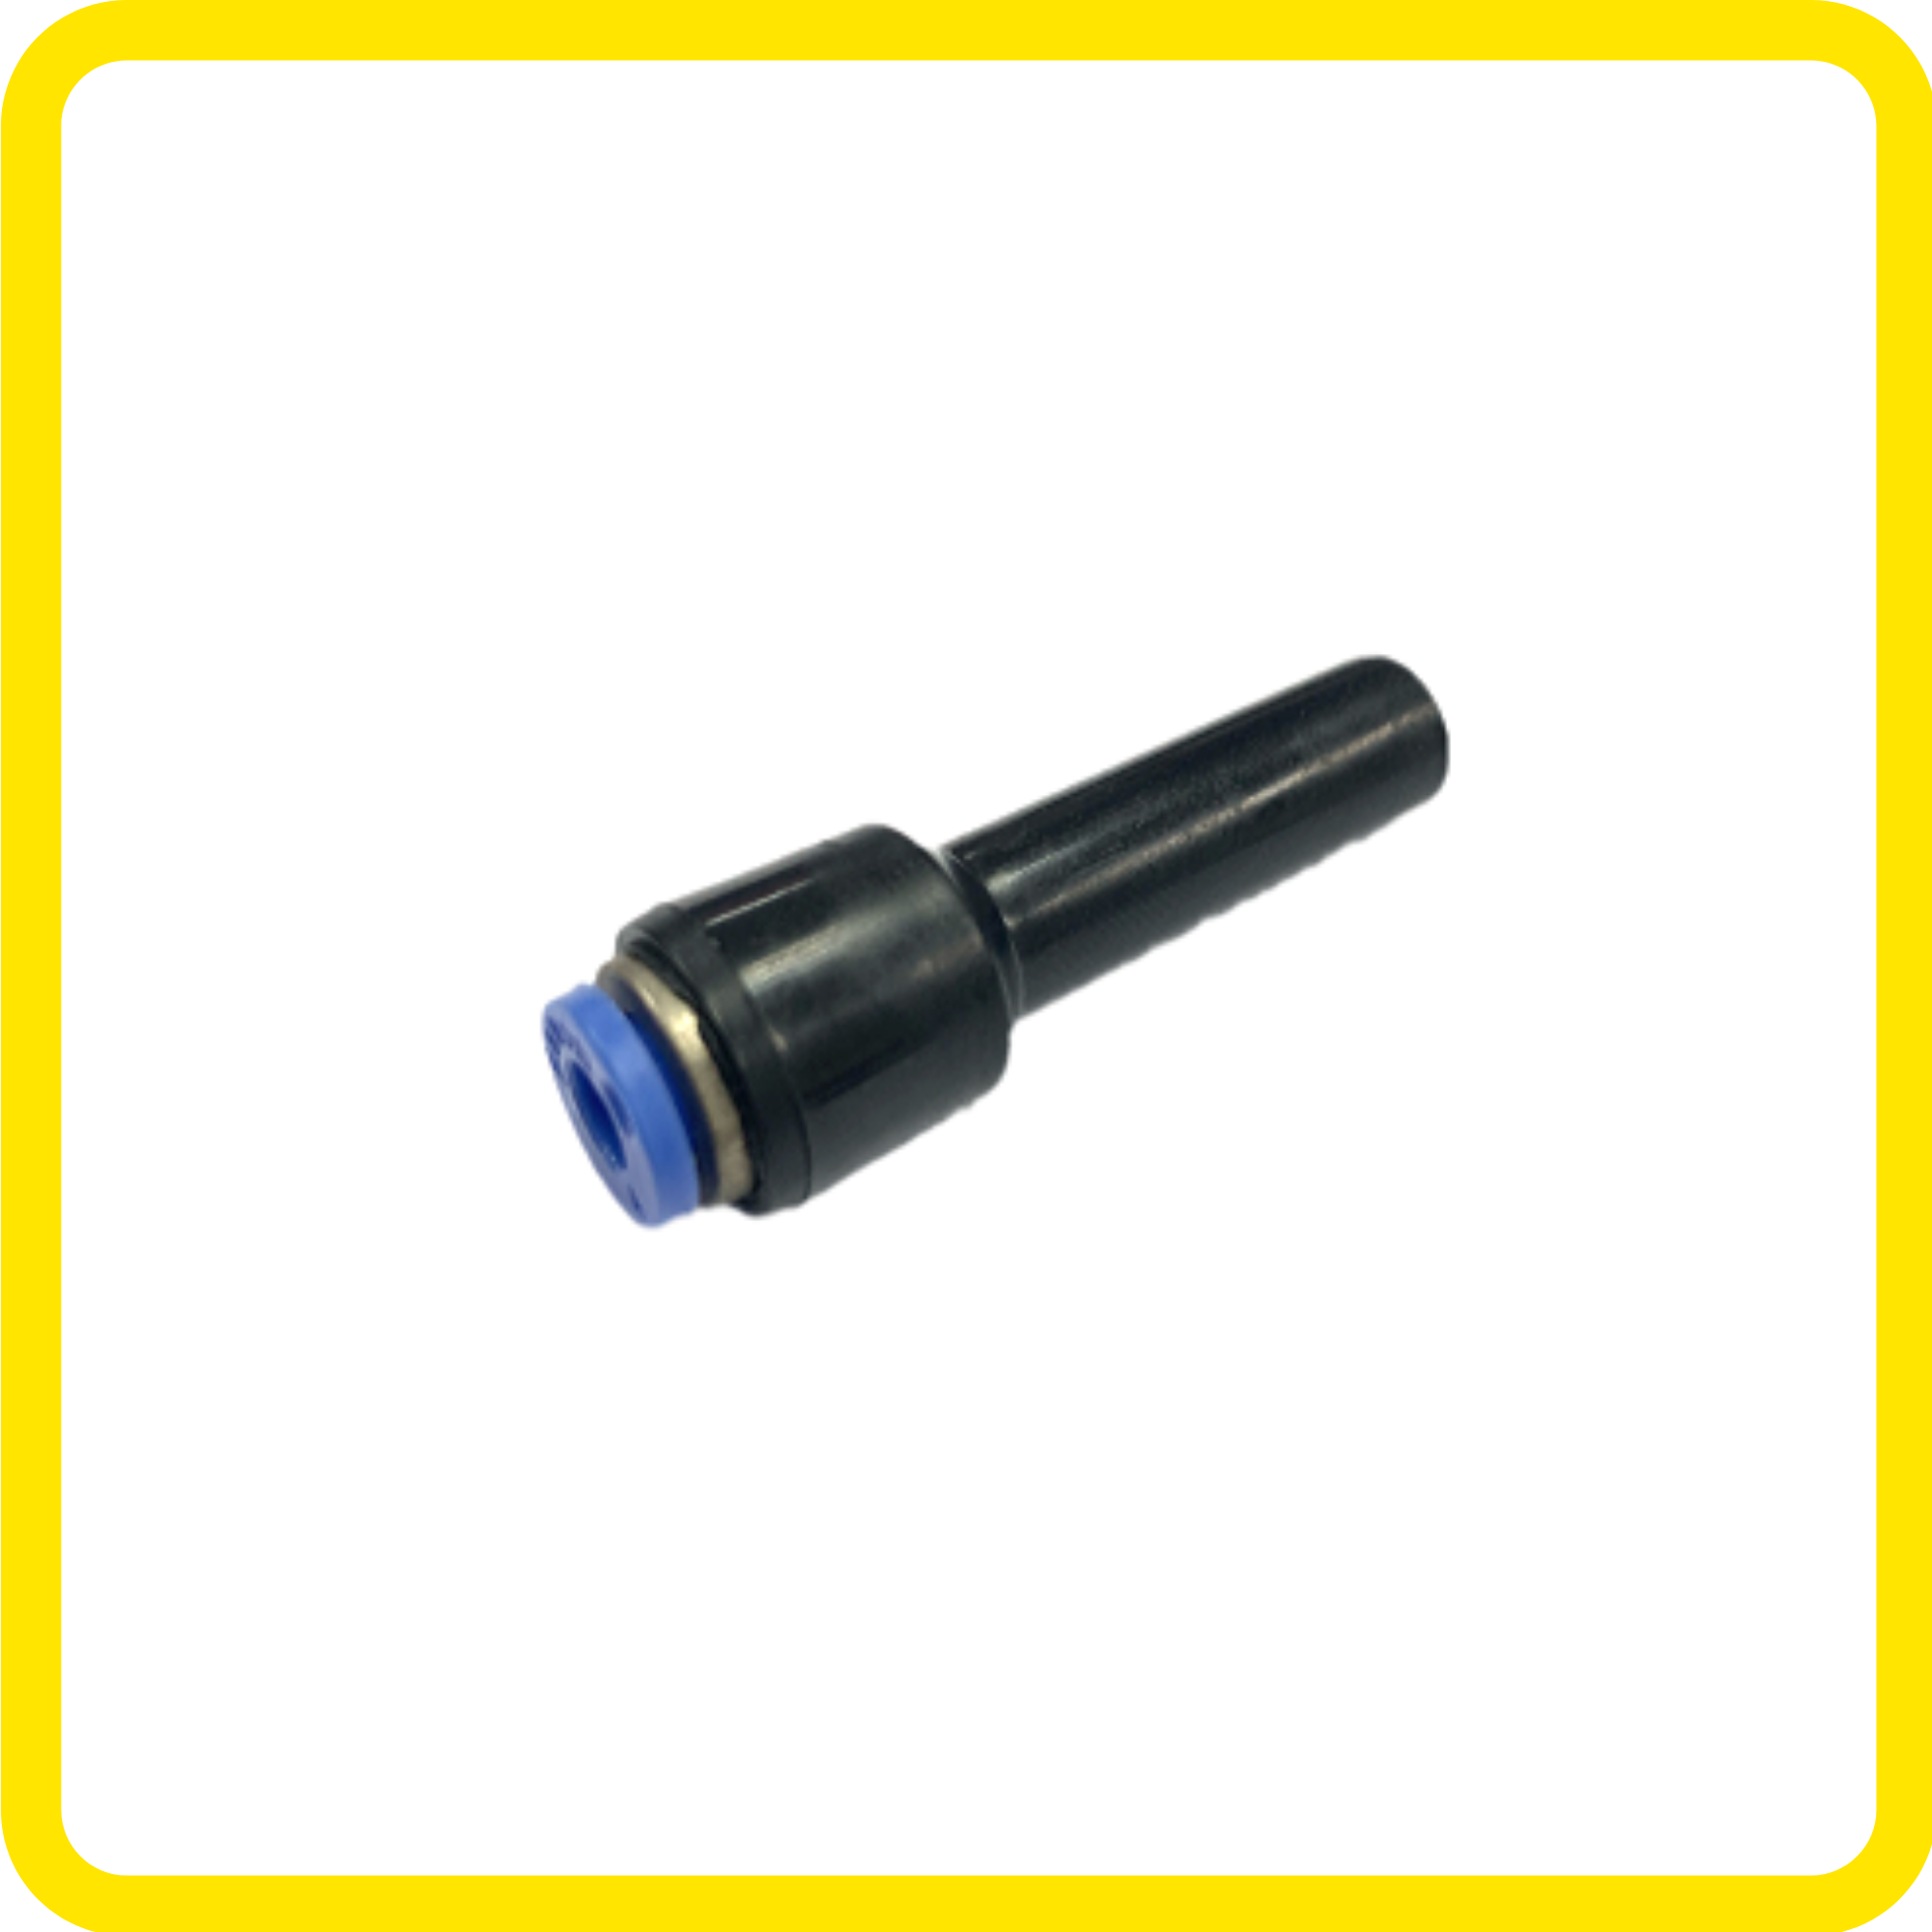 SWISH Reducing Tee Pneumatic Stud Air Fitting Push In Quick Fitting (PGJ06,08,10,12 - 04,06,08,10)